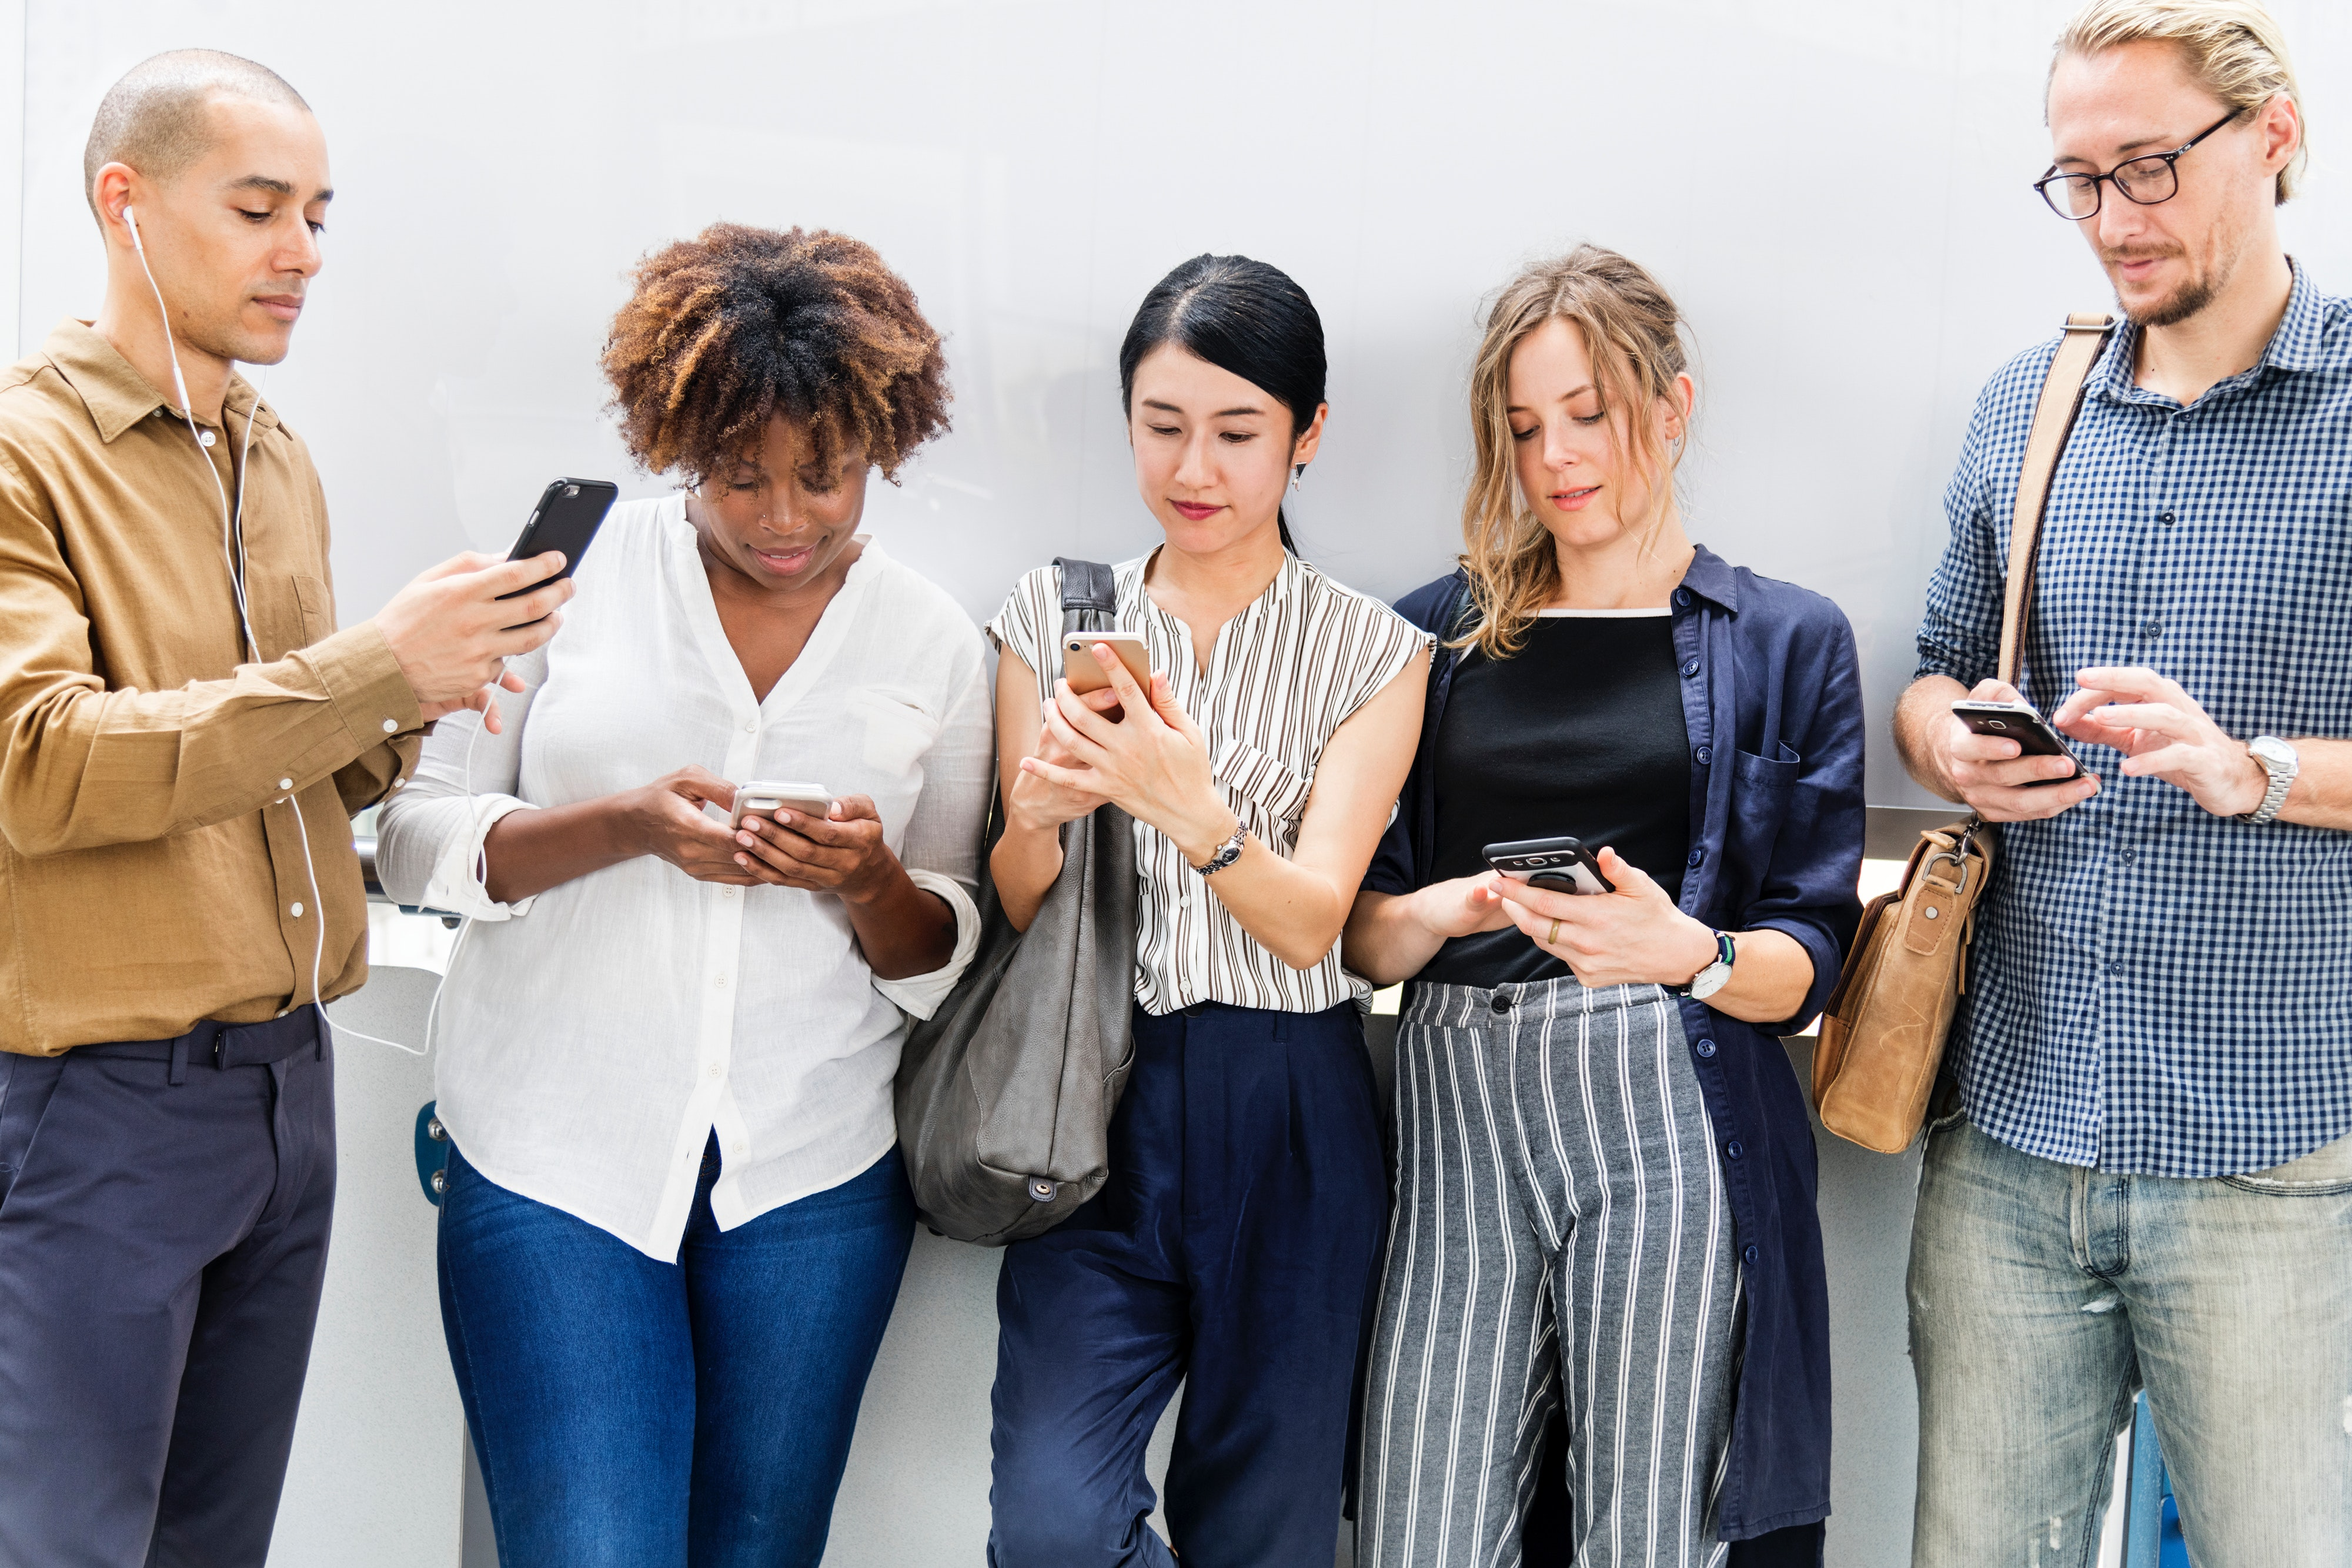 Five adults standing side by side while looking at their phones